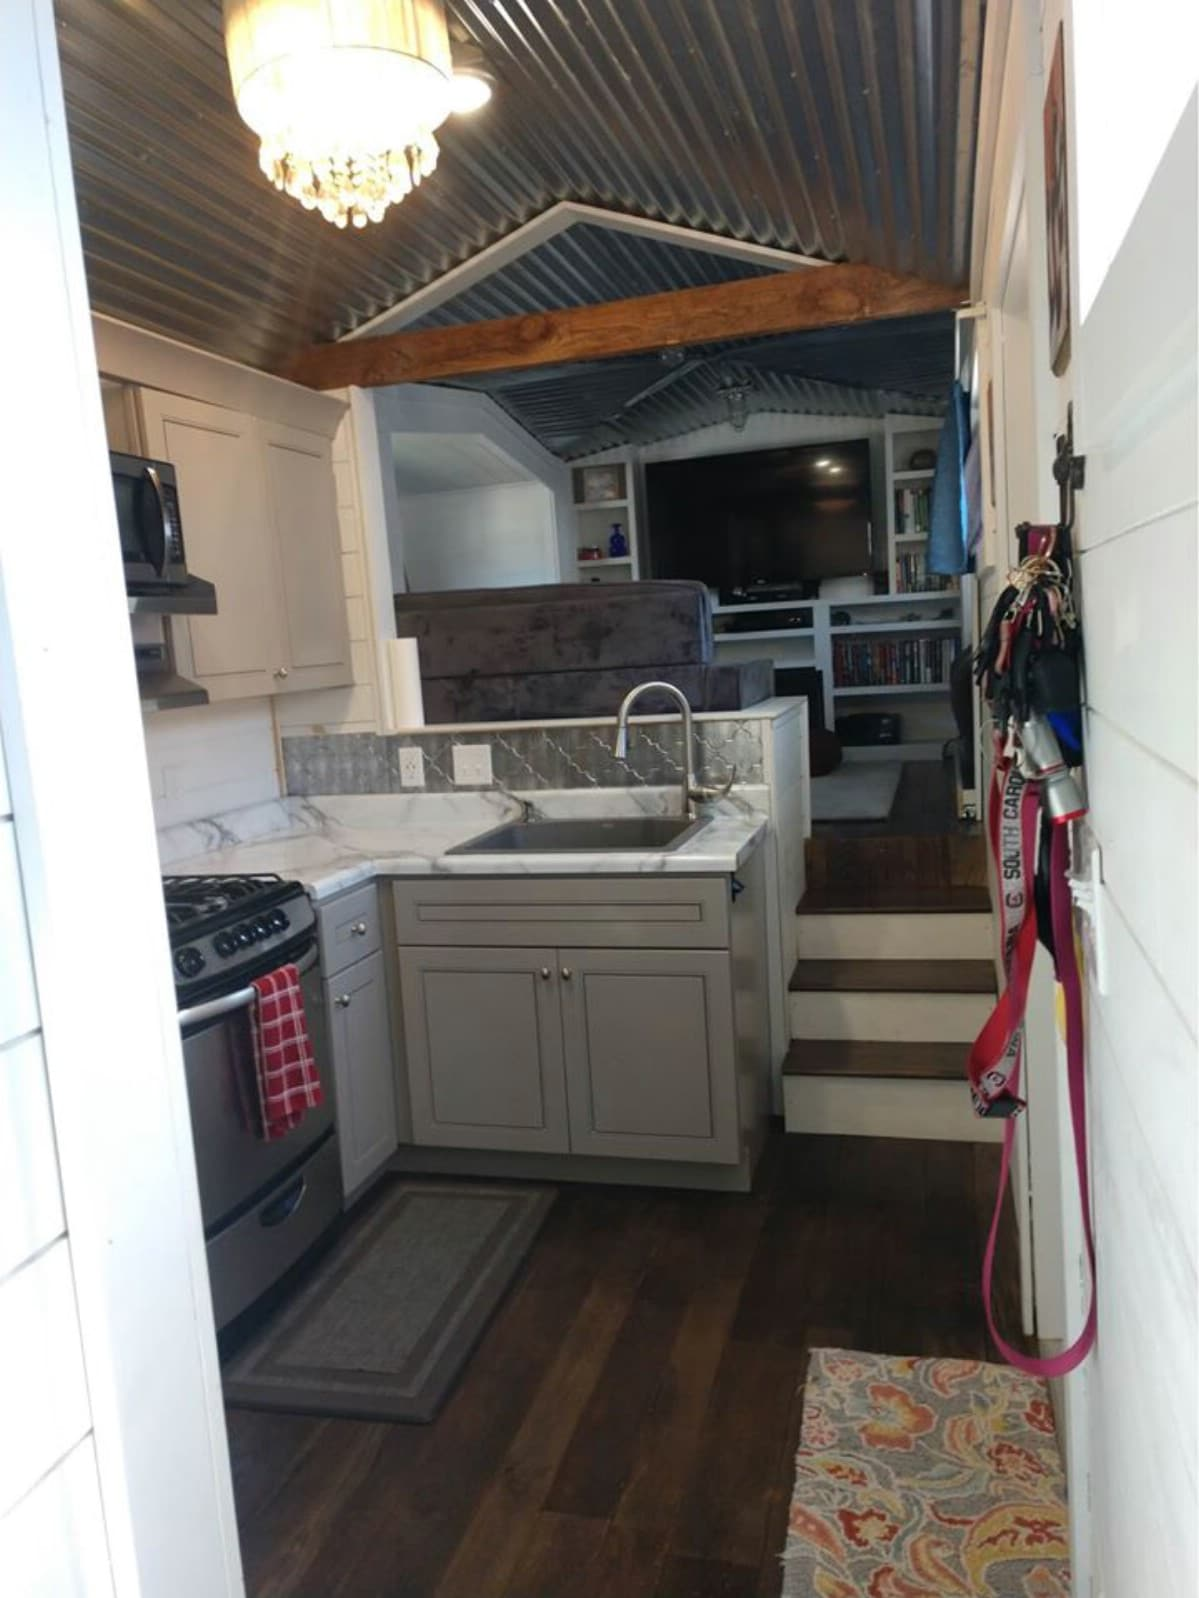 Furnished kitchen of tiny home